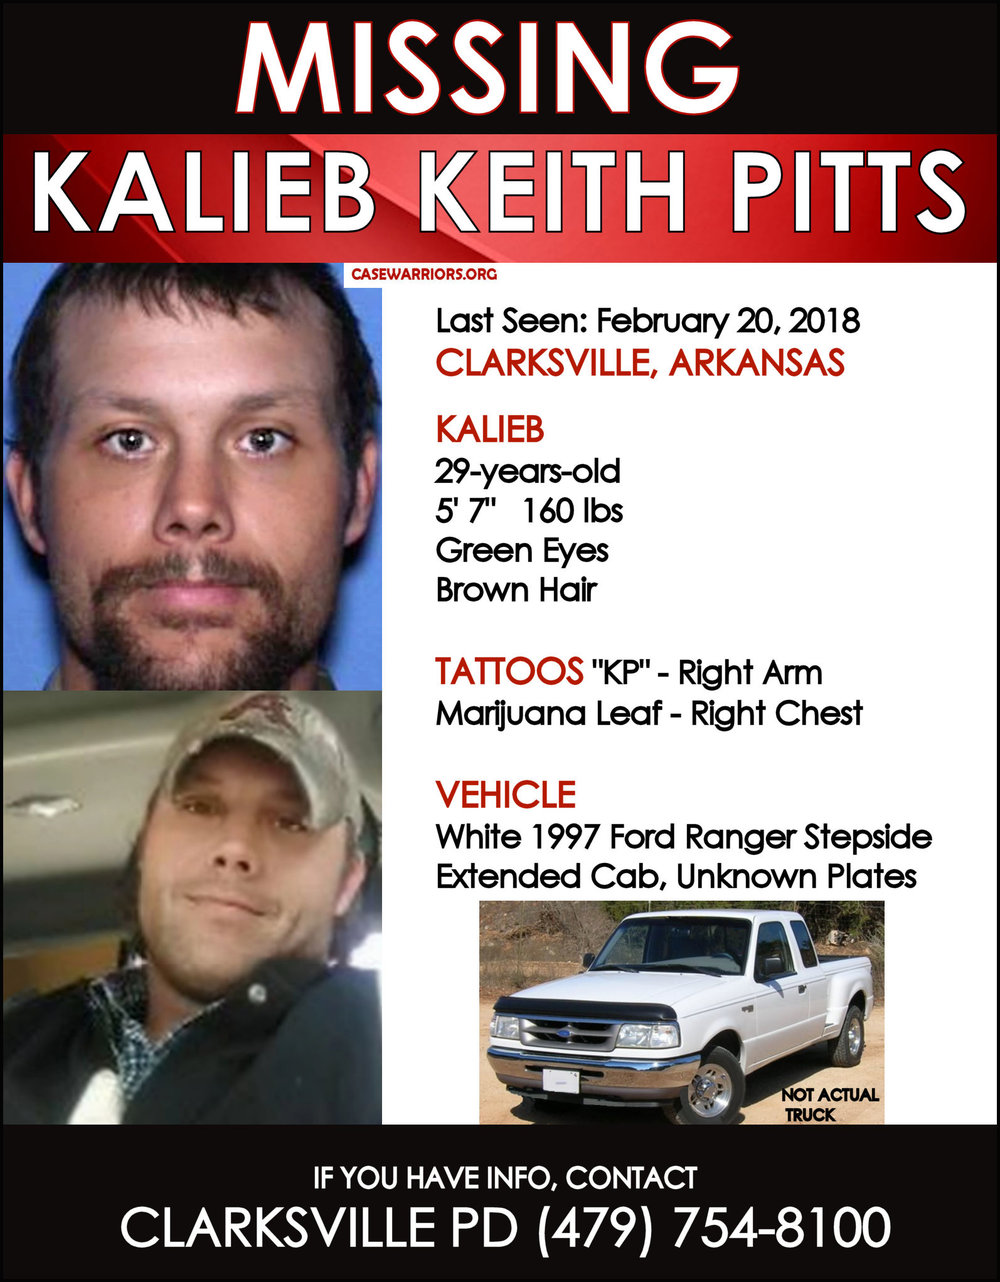 KALIEB KEITH PITTS